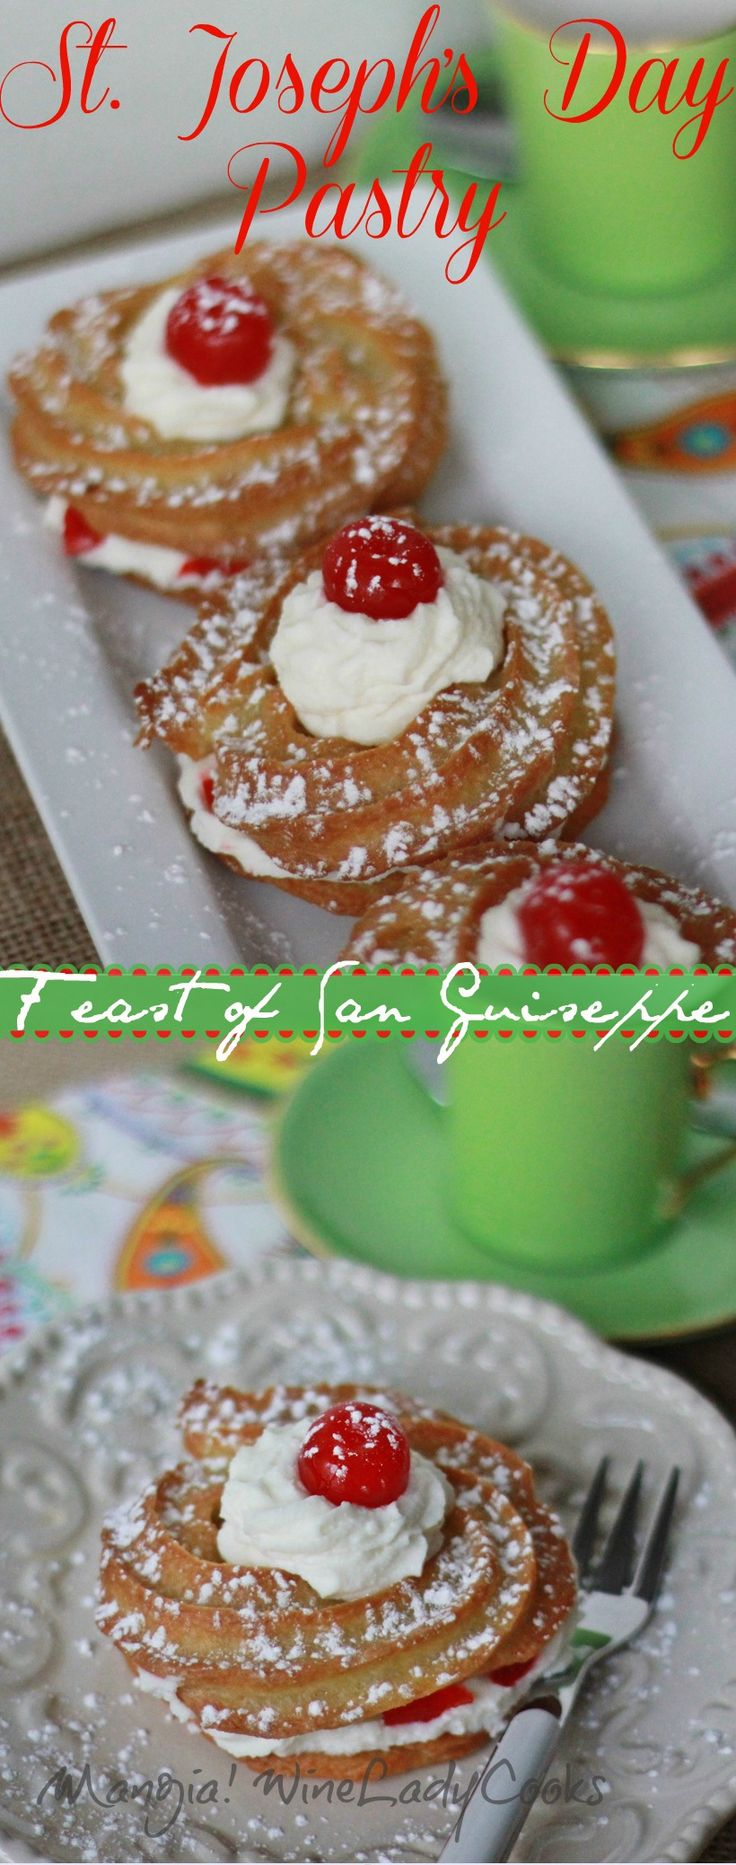 St. Joseph's Day Pastry celebrates the spring Feast of St. Joseph in Italy. Easy recipe click thru for details.